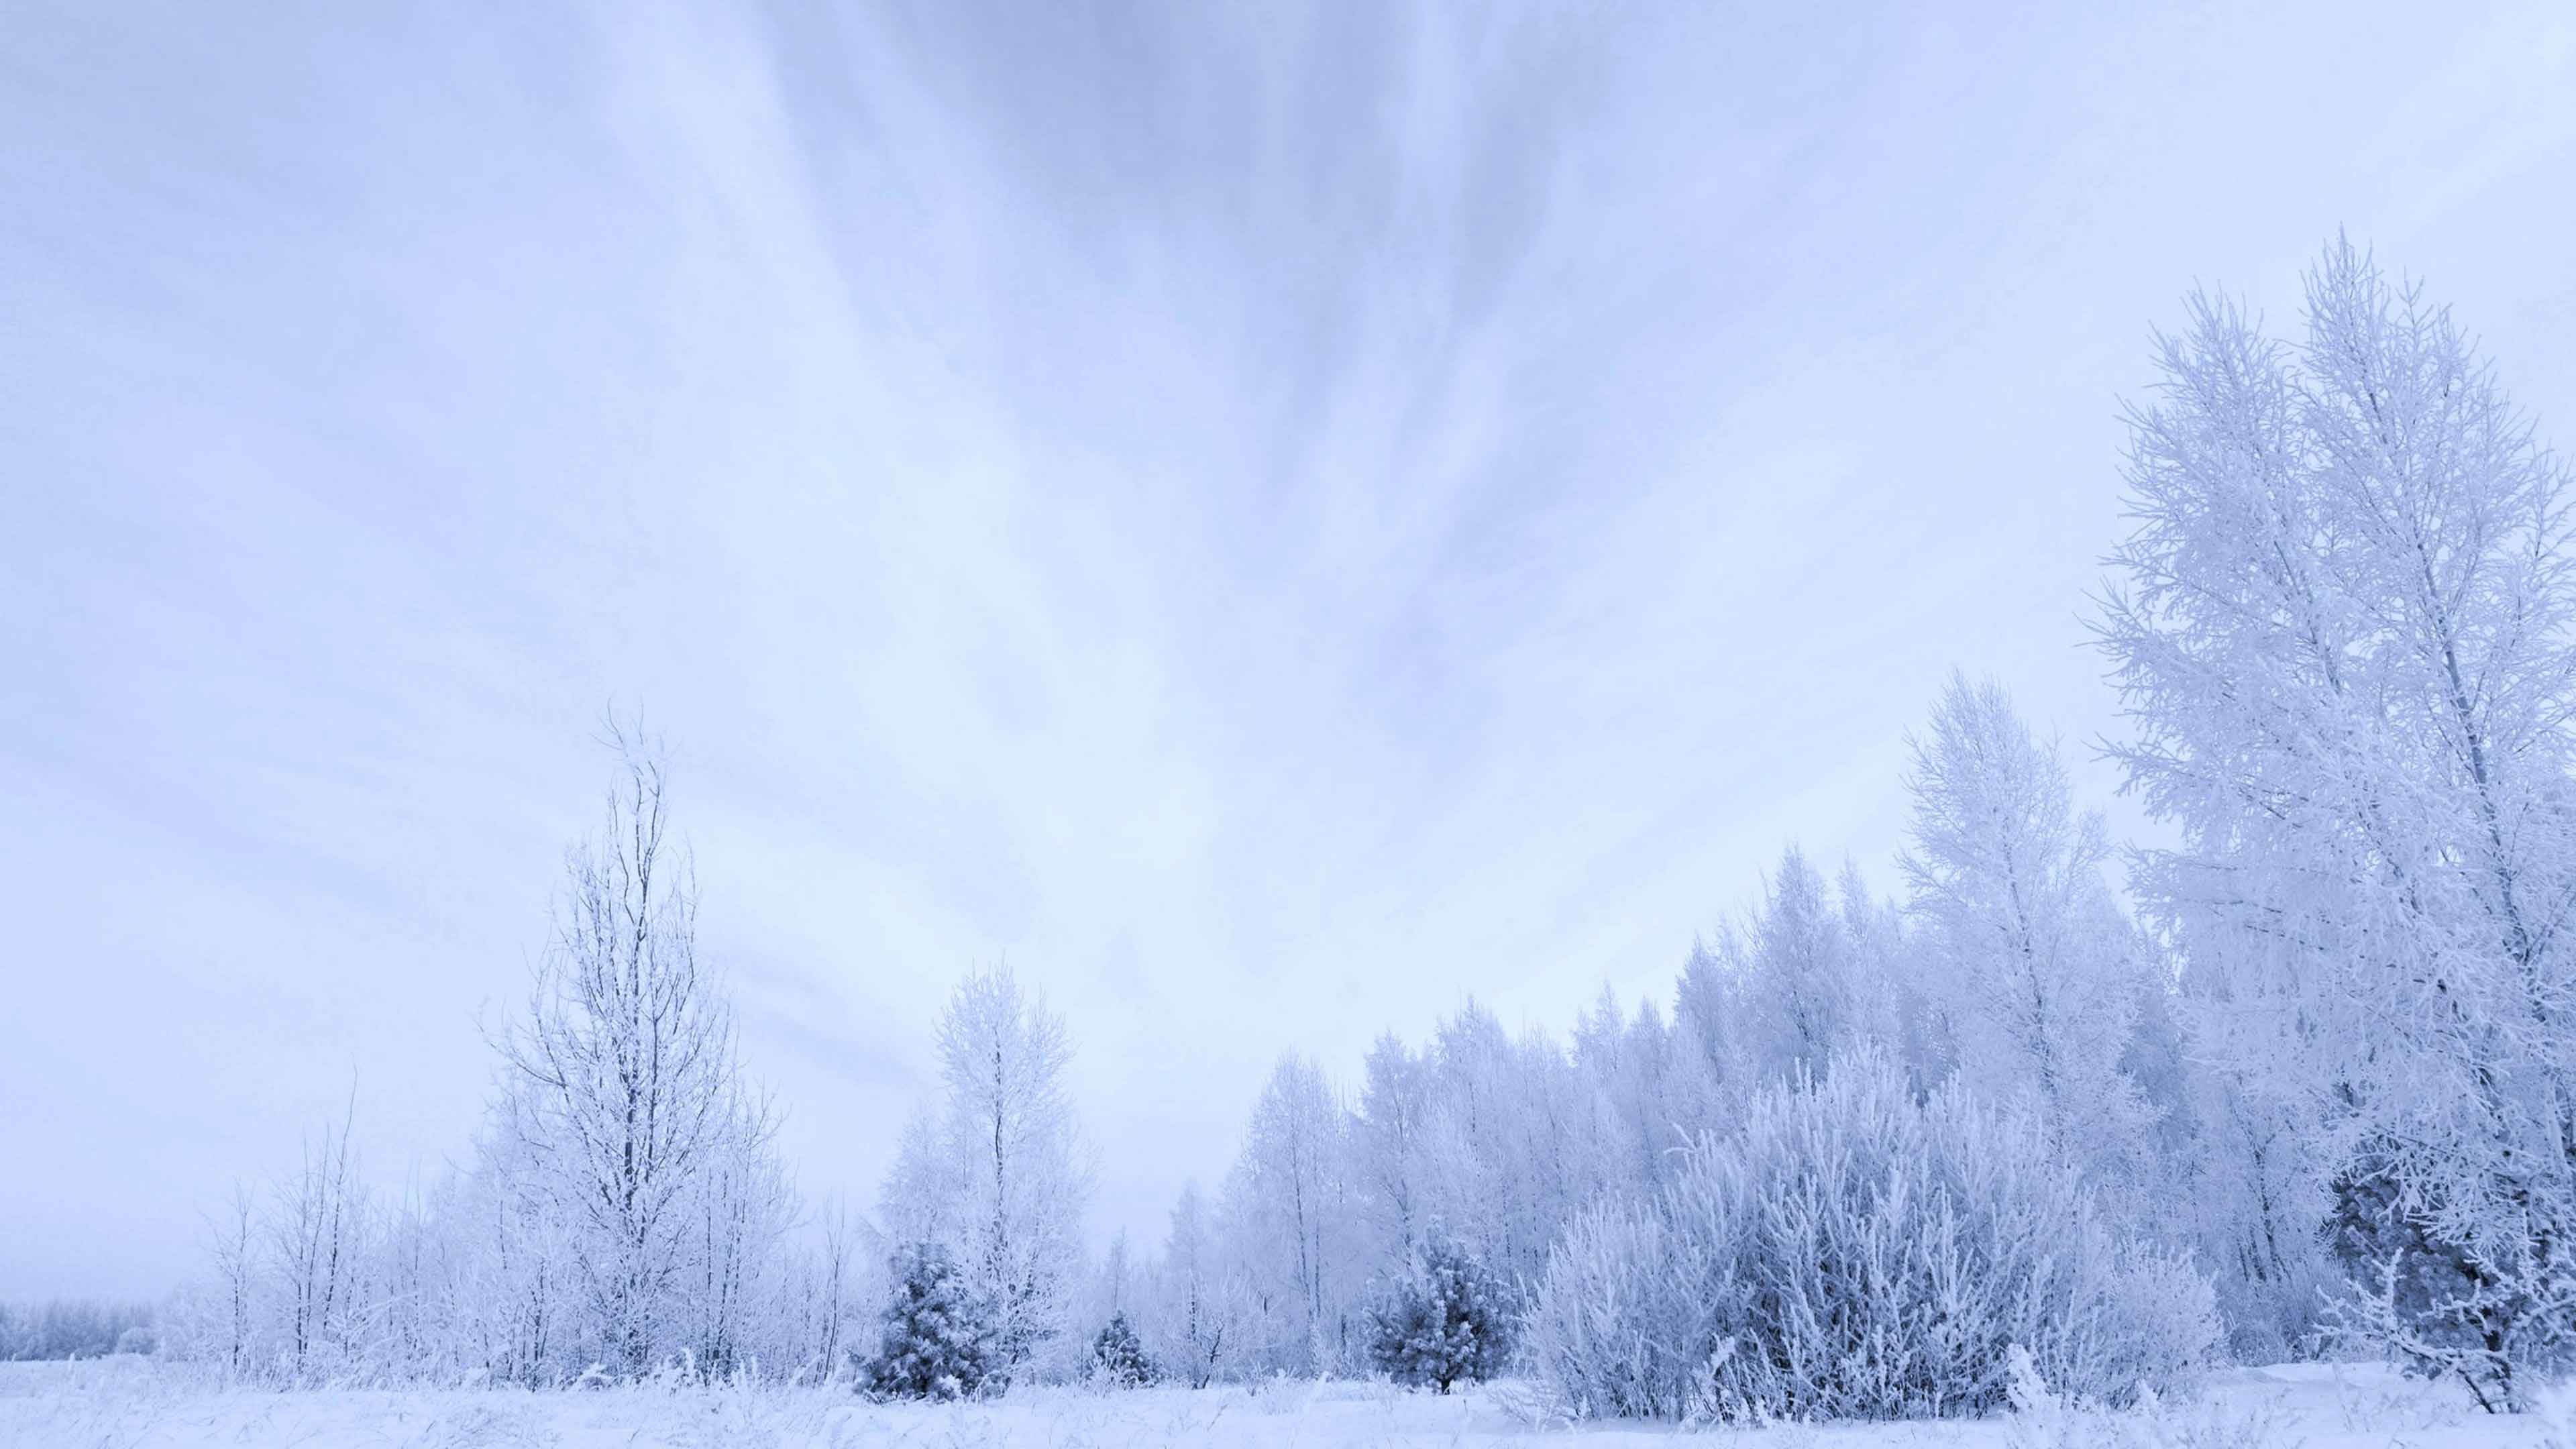 3840x2160 Landscapes Snow White Nature Clouds Sky Forest Trees Countryside Earth  Winter Background Wallpaper Of